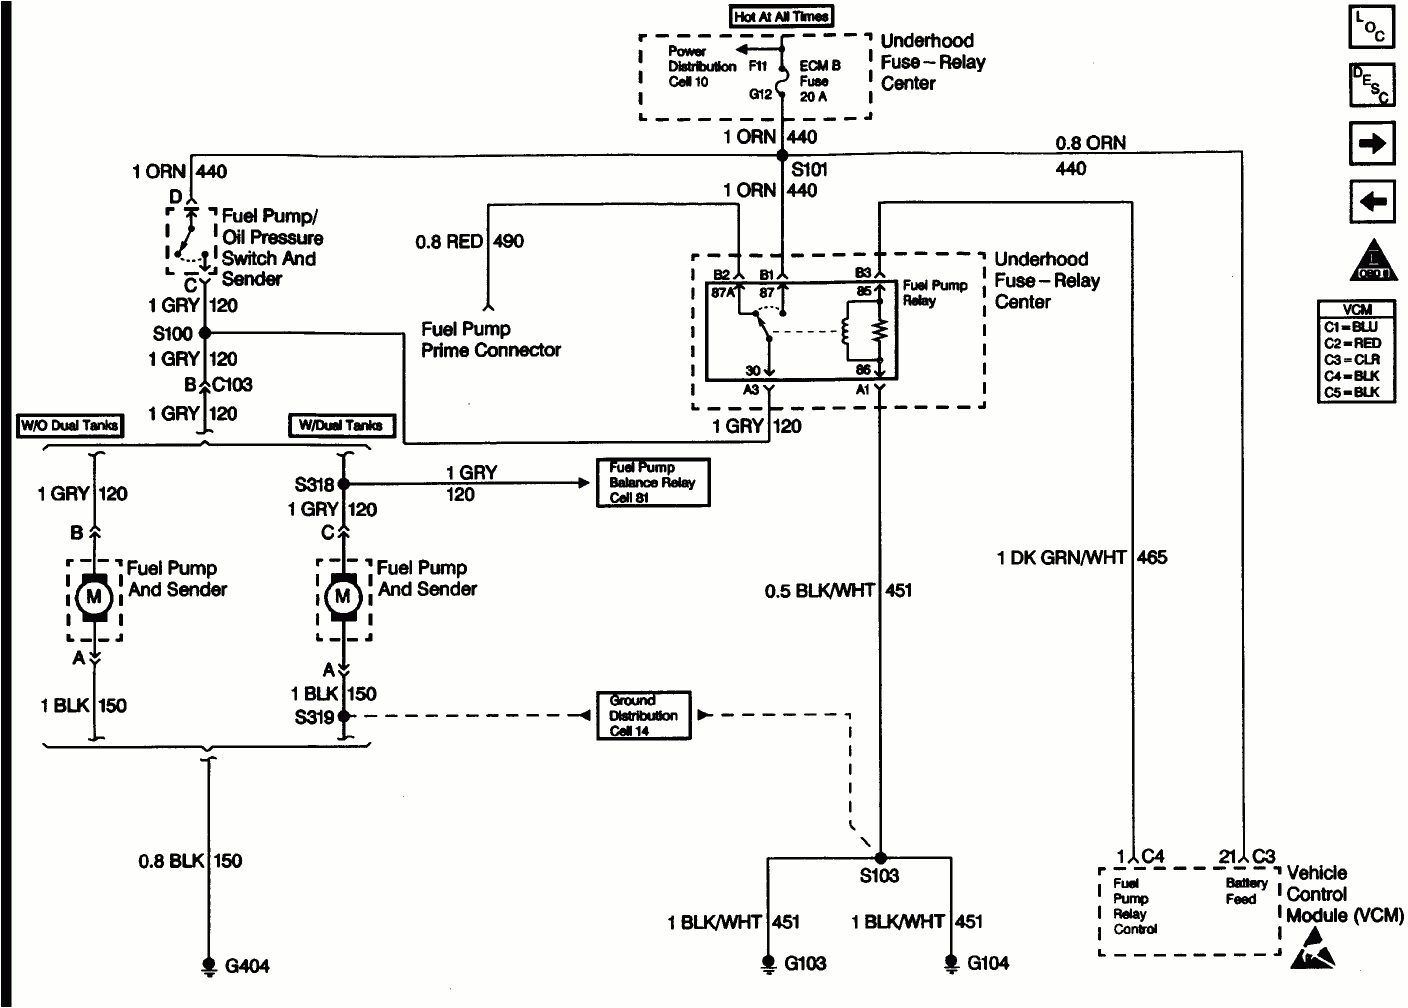 2007 suburban wiring diagram wiring diagram 2007 lcf fuel gauge wiring diagrams